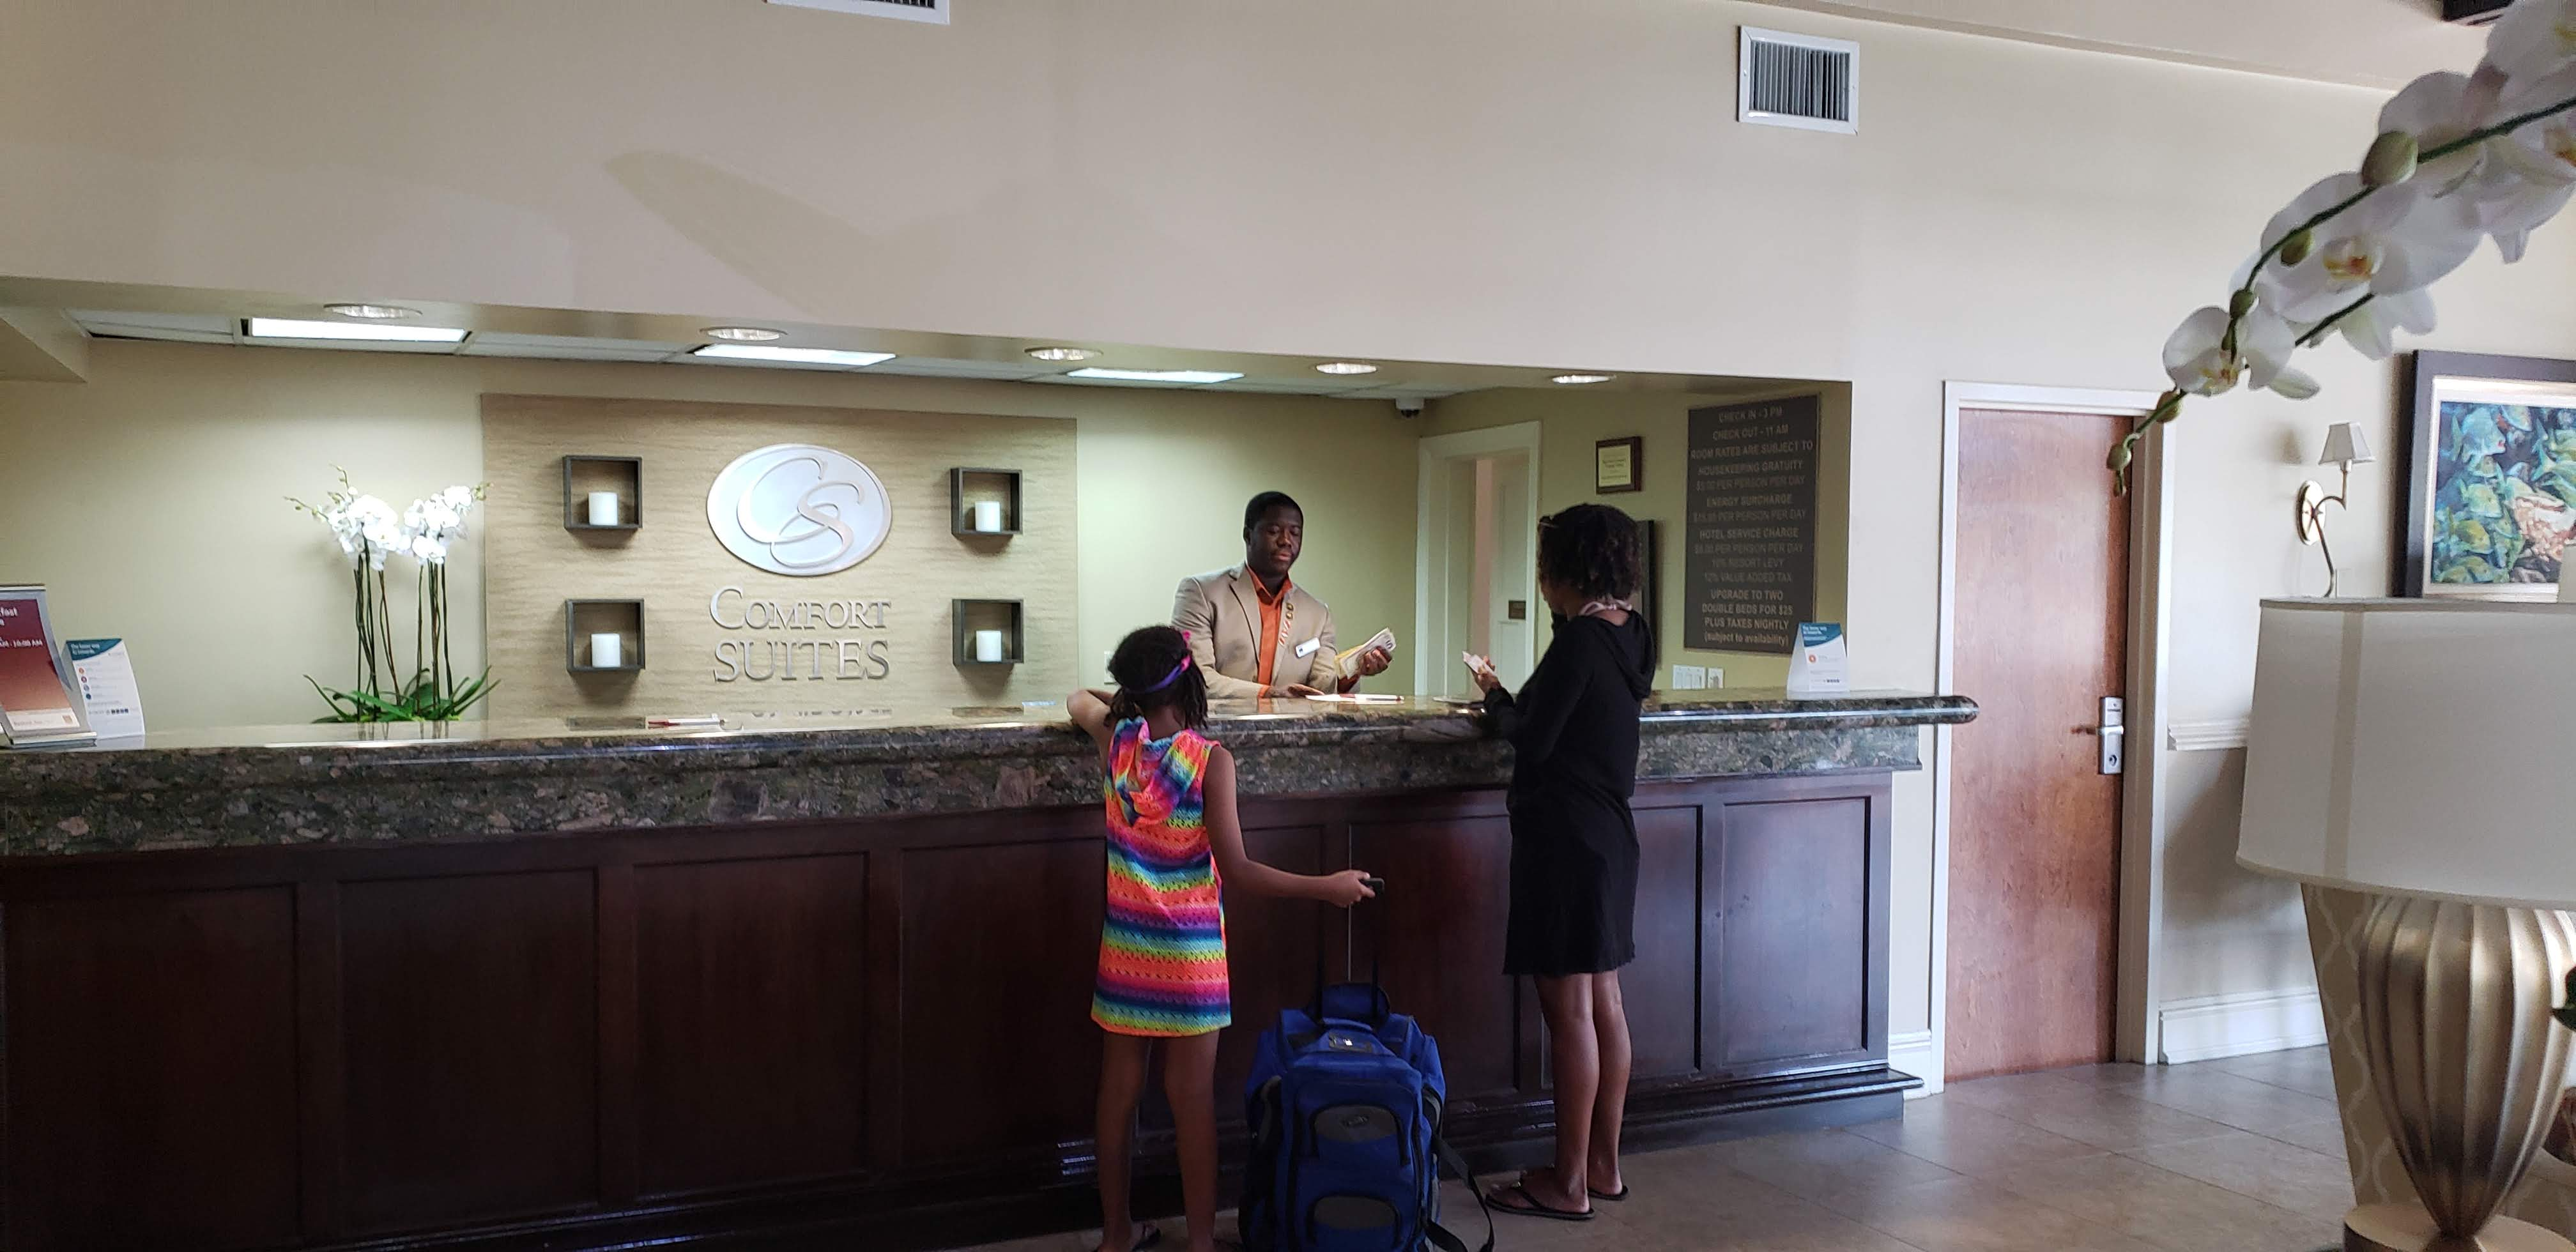 Check in to the family friendly Comfort Suites Paradise Island and enjoy full complimentary access to The Atlantis and Aquaventure Waterparks and pools.